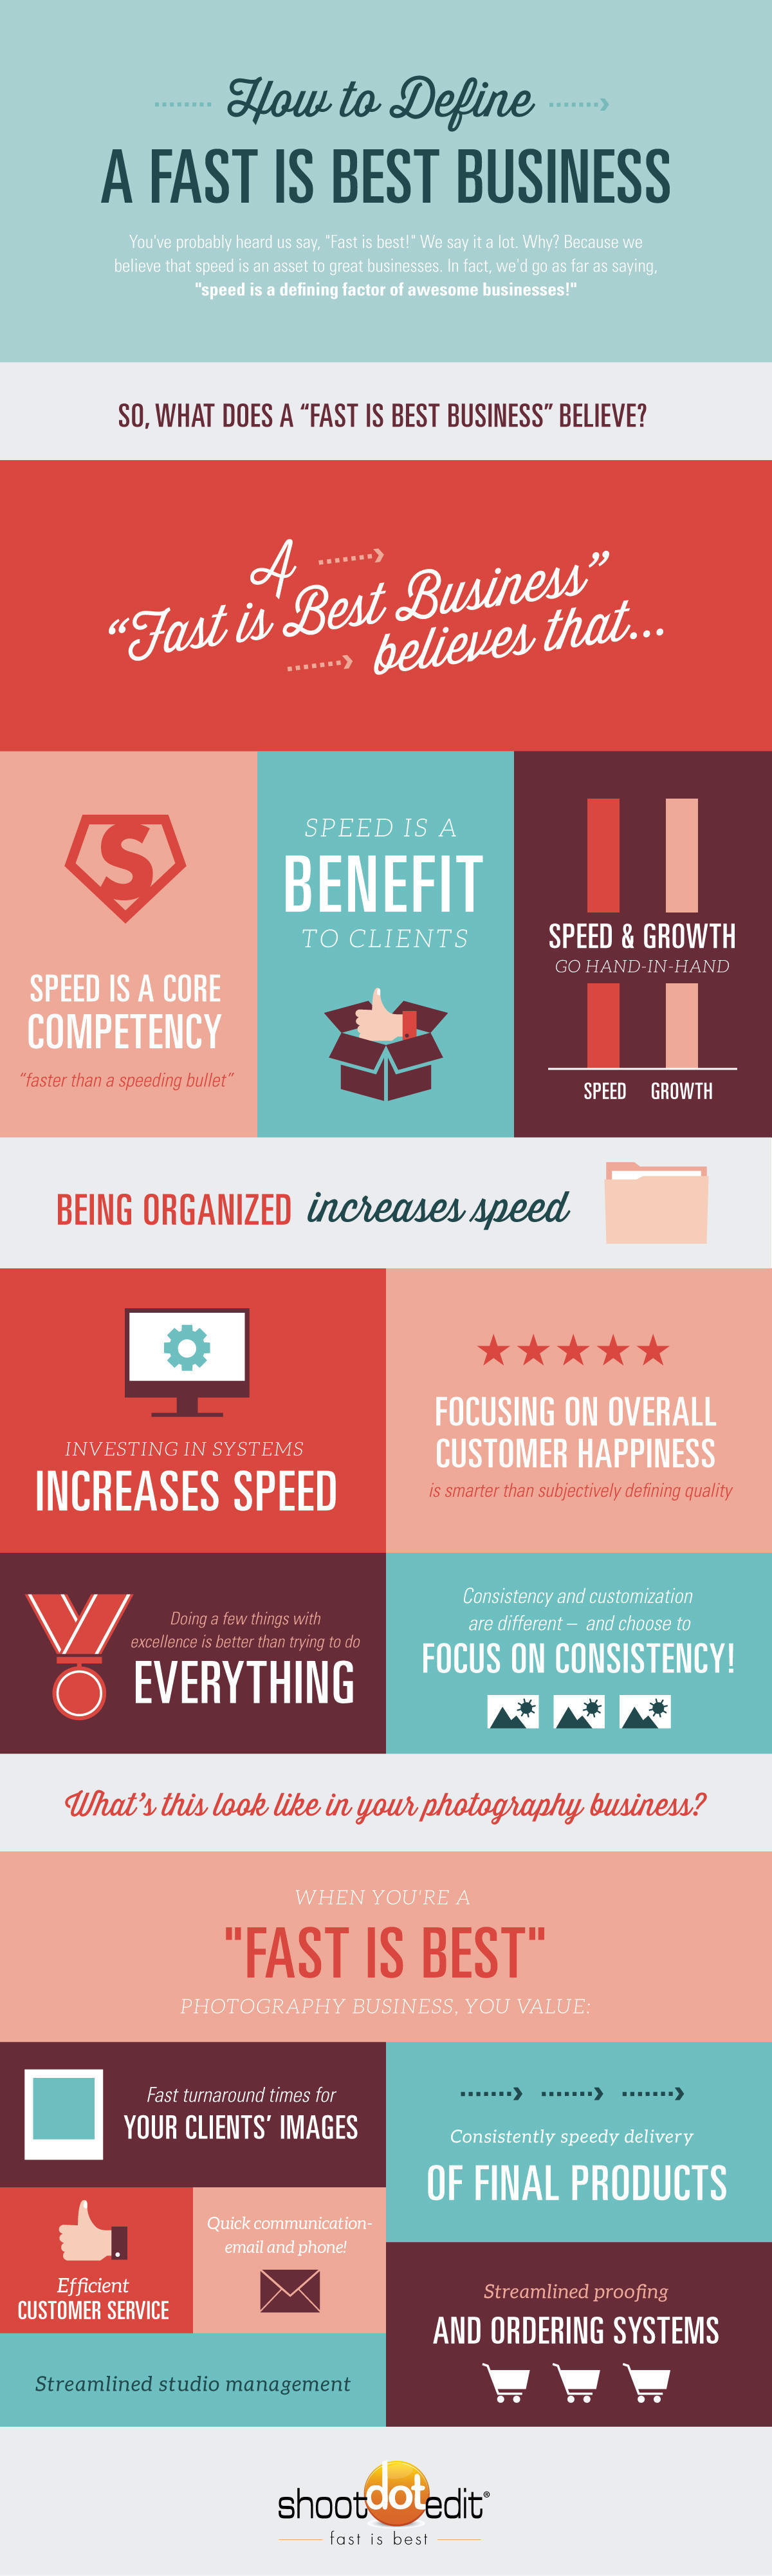 How to Define a Fast is Best Business